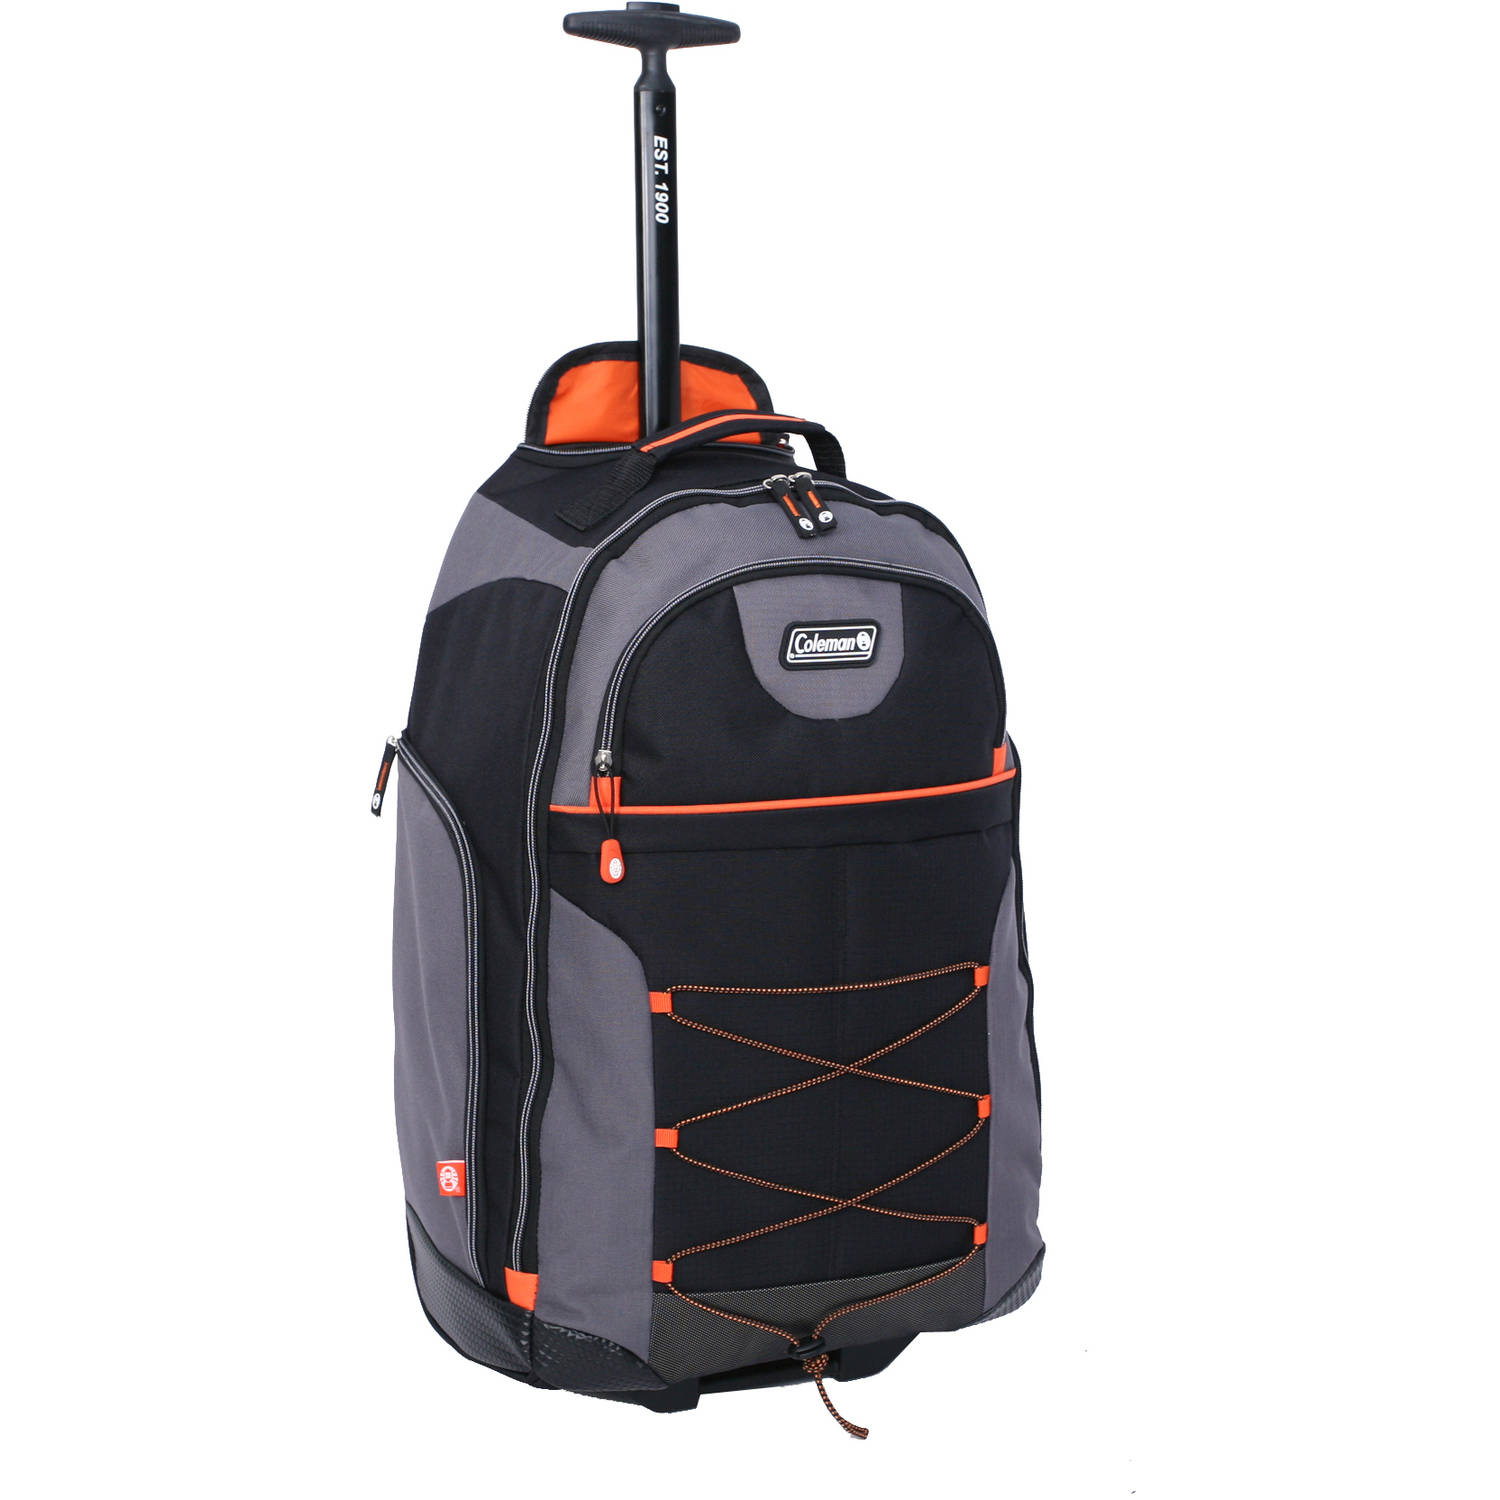 Coleman Rolling Backpack, Grey - Walmart.com